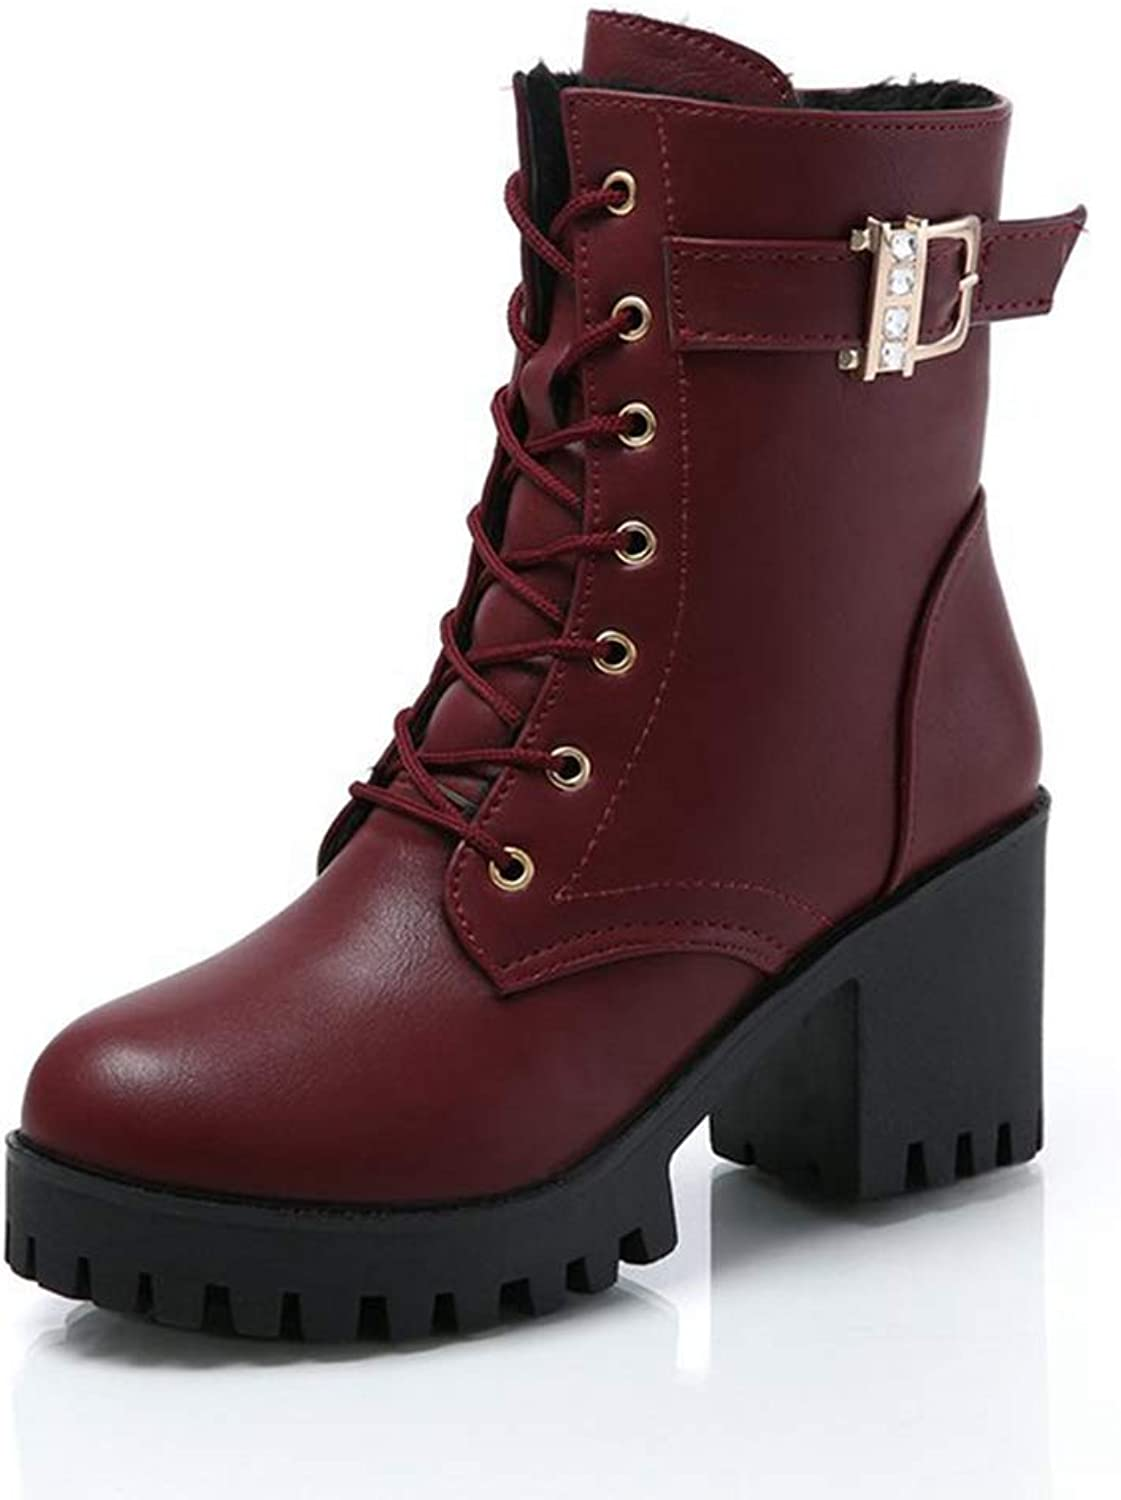 York Zhu Women Leisure Ankle Boots,Lace-Up High Thick Short Boots High-Heel Bootie